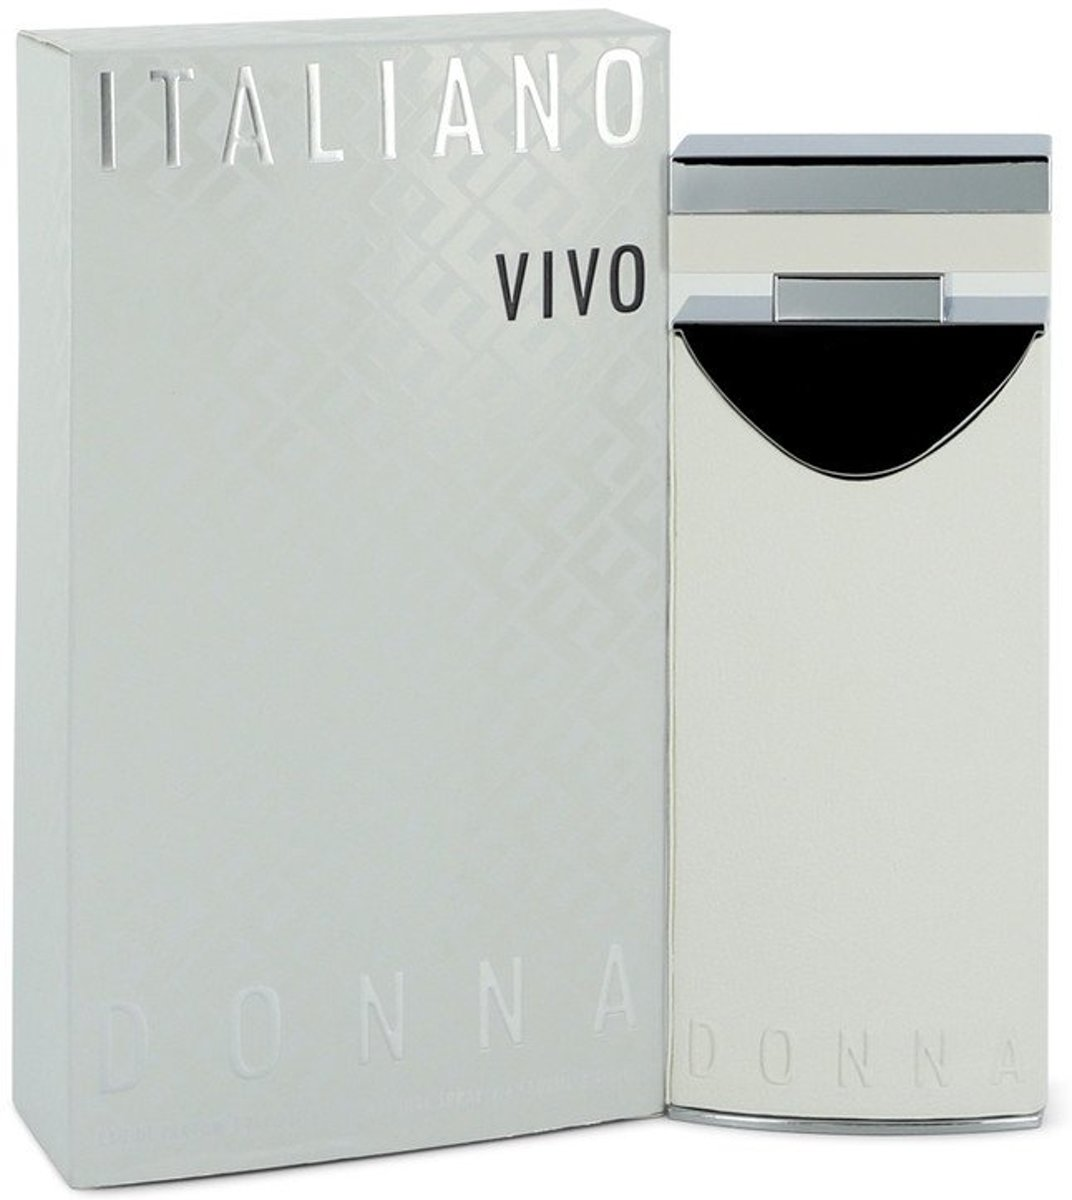 Armaf Italiano Vivo eau de parfum spray 100 ml